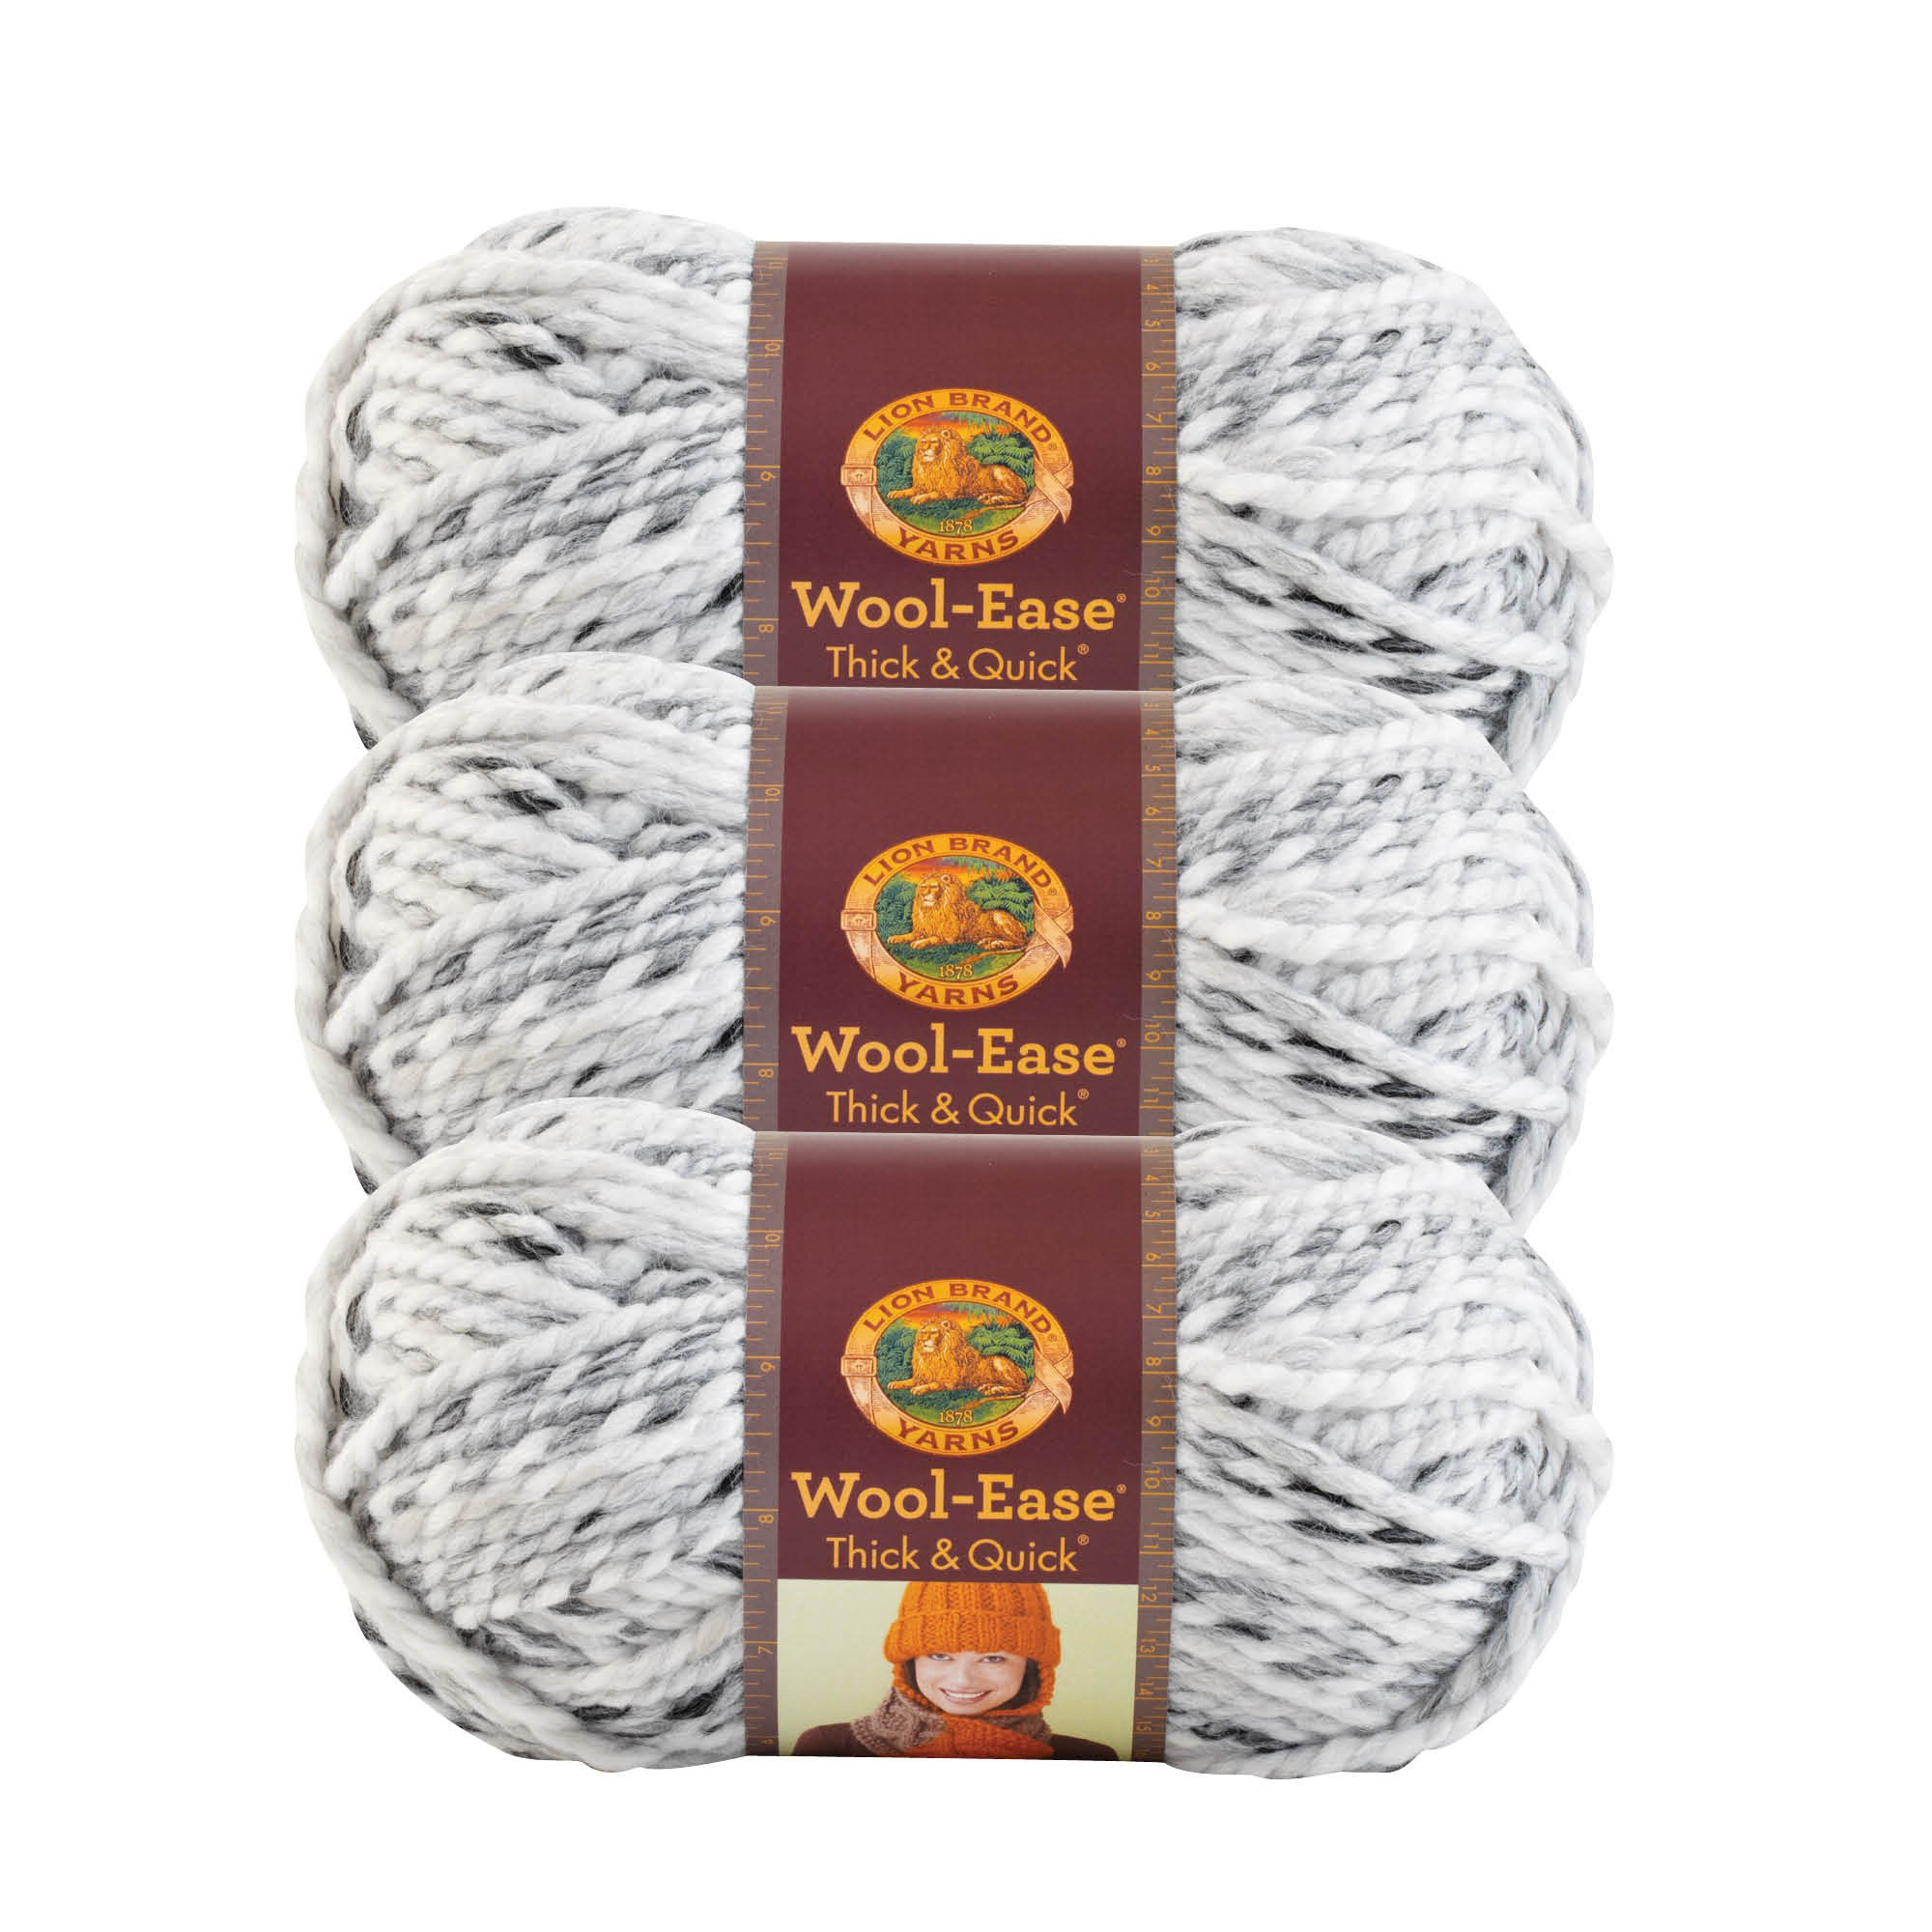 (3 Pack) Lion Brand Yarn 640-505 Wool-Ease Thick and Quick Yarn, 97 Meters, Marble